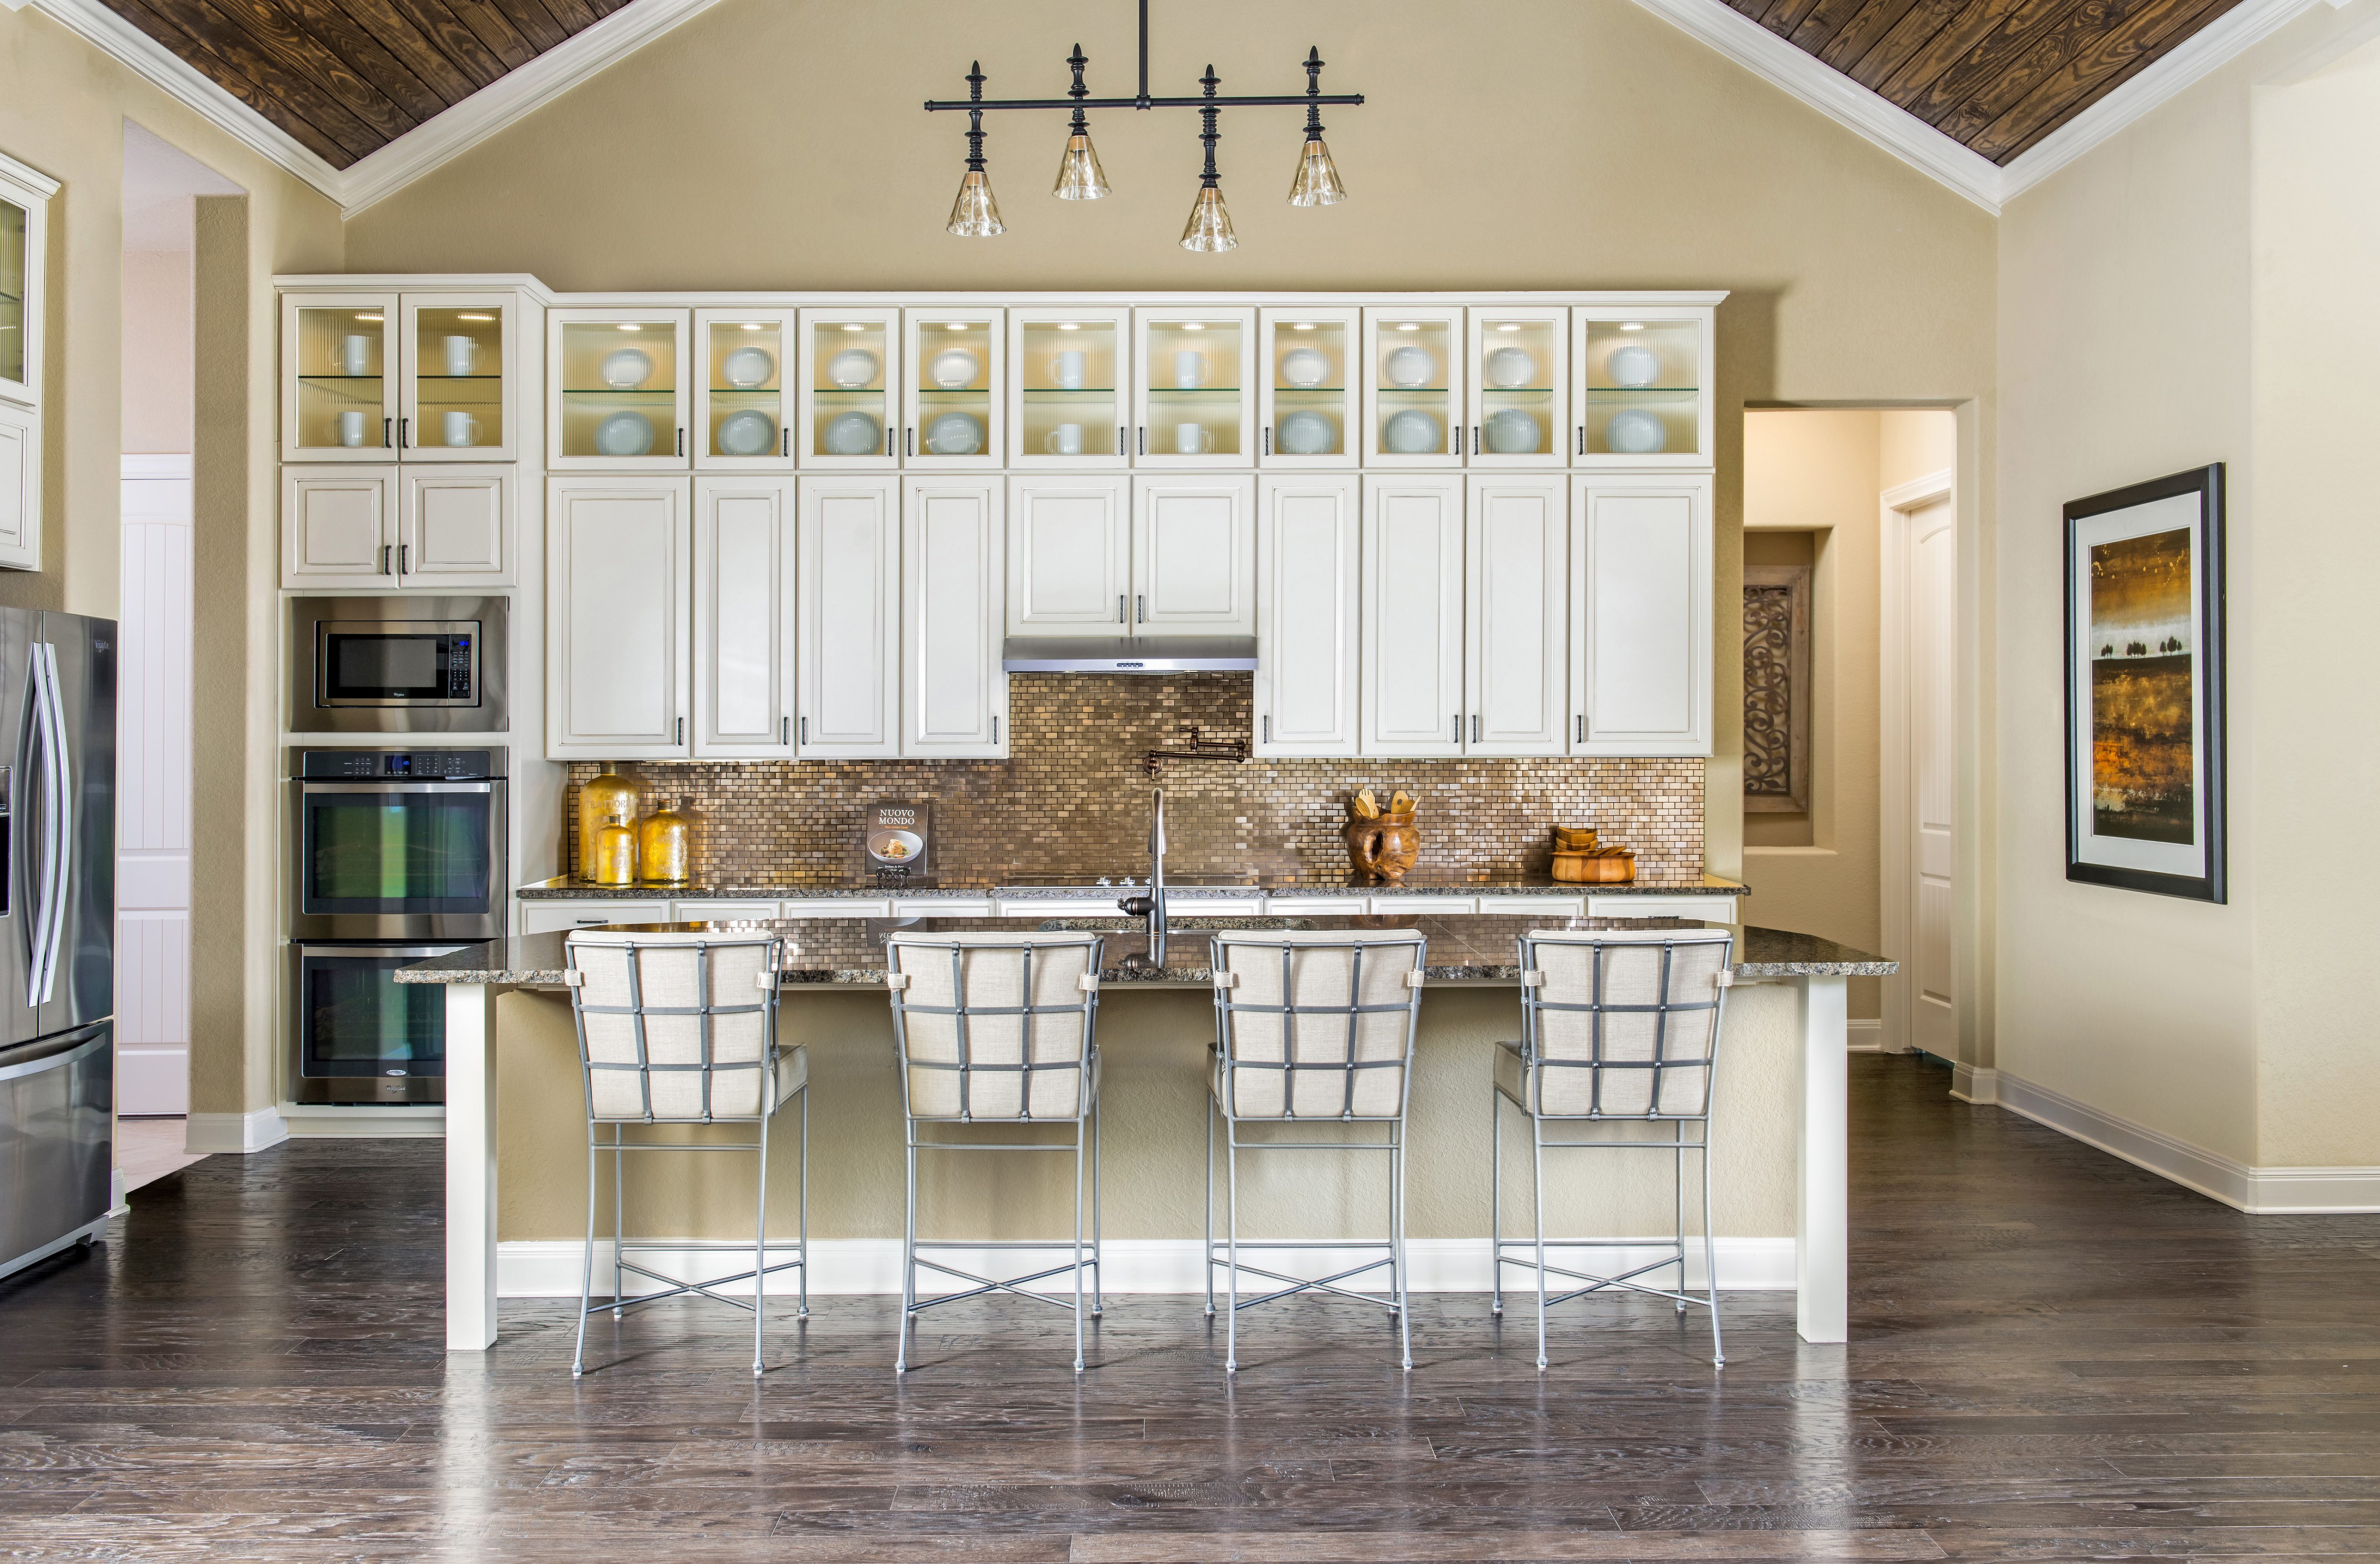 Copper Ridge Homes in New Braunfels, TX | Ashton Woods